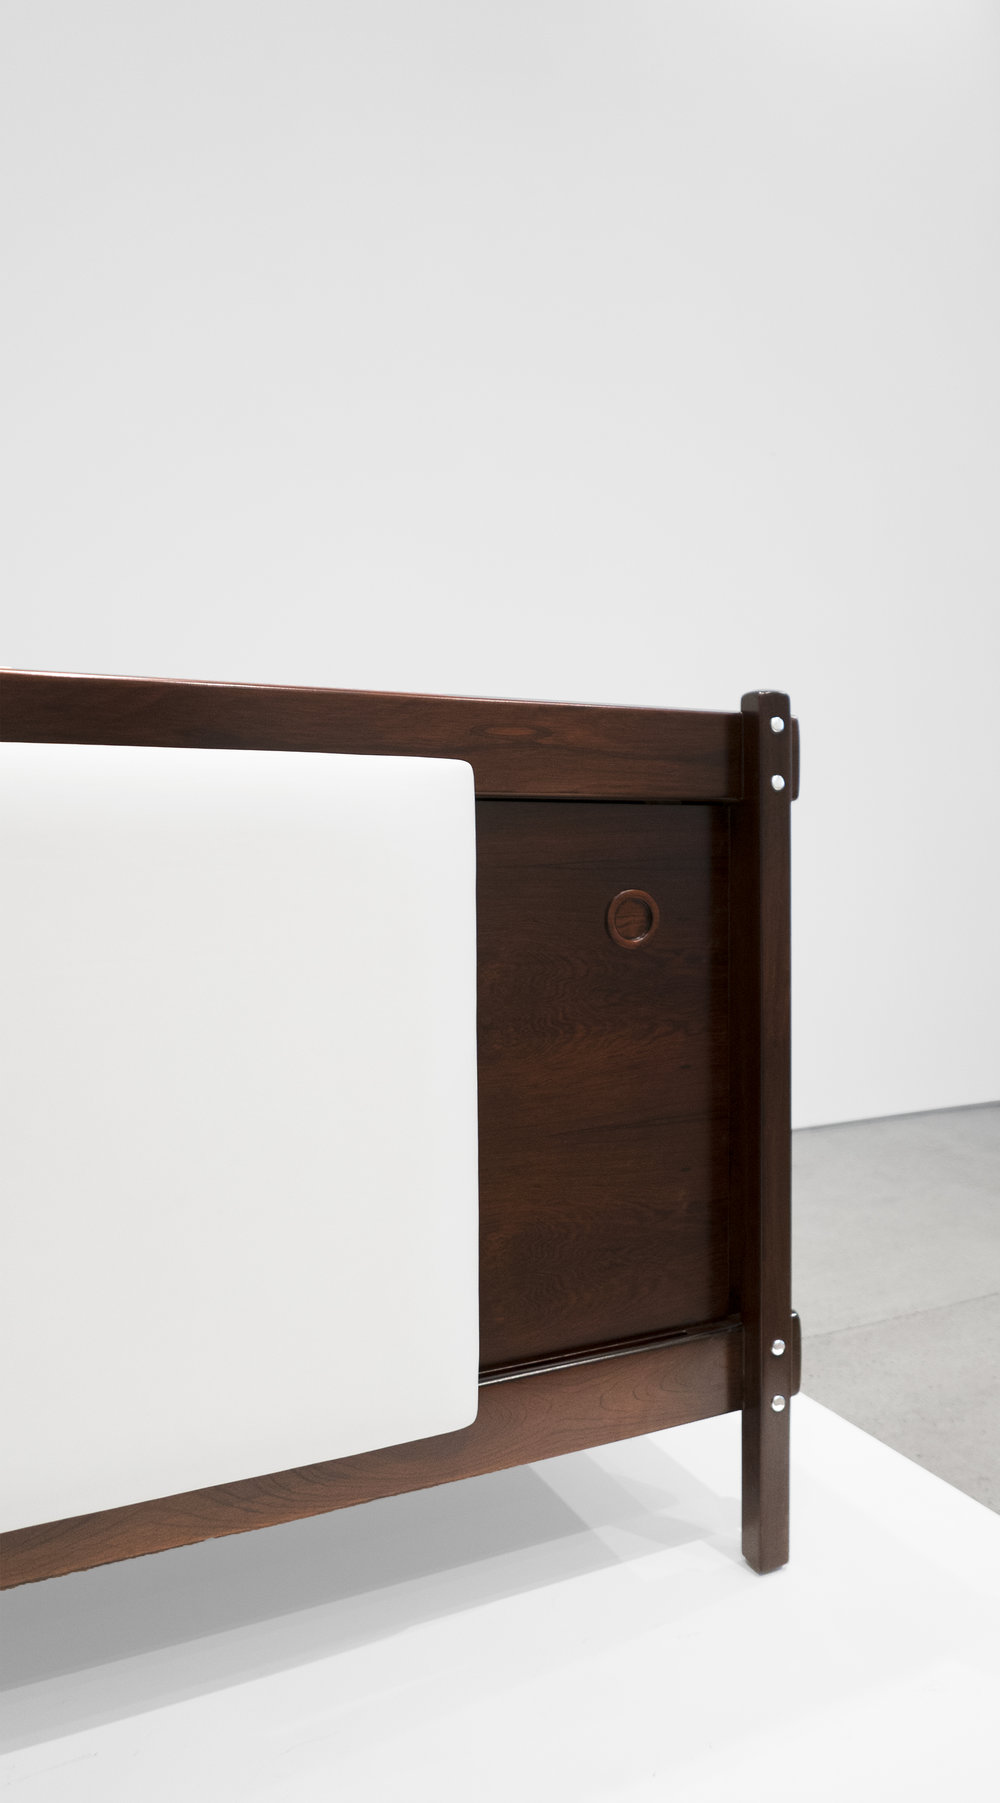 Sergio Rodrigues, Rosewood Credenza, c. 1965, Rosewood, Leather, 30.5 H x 79.5 W x 19.75 D inches_5.jpg